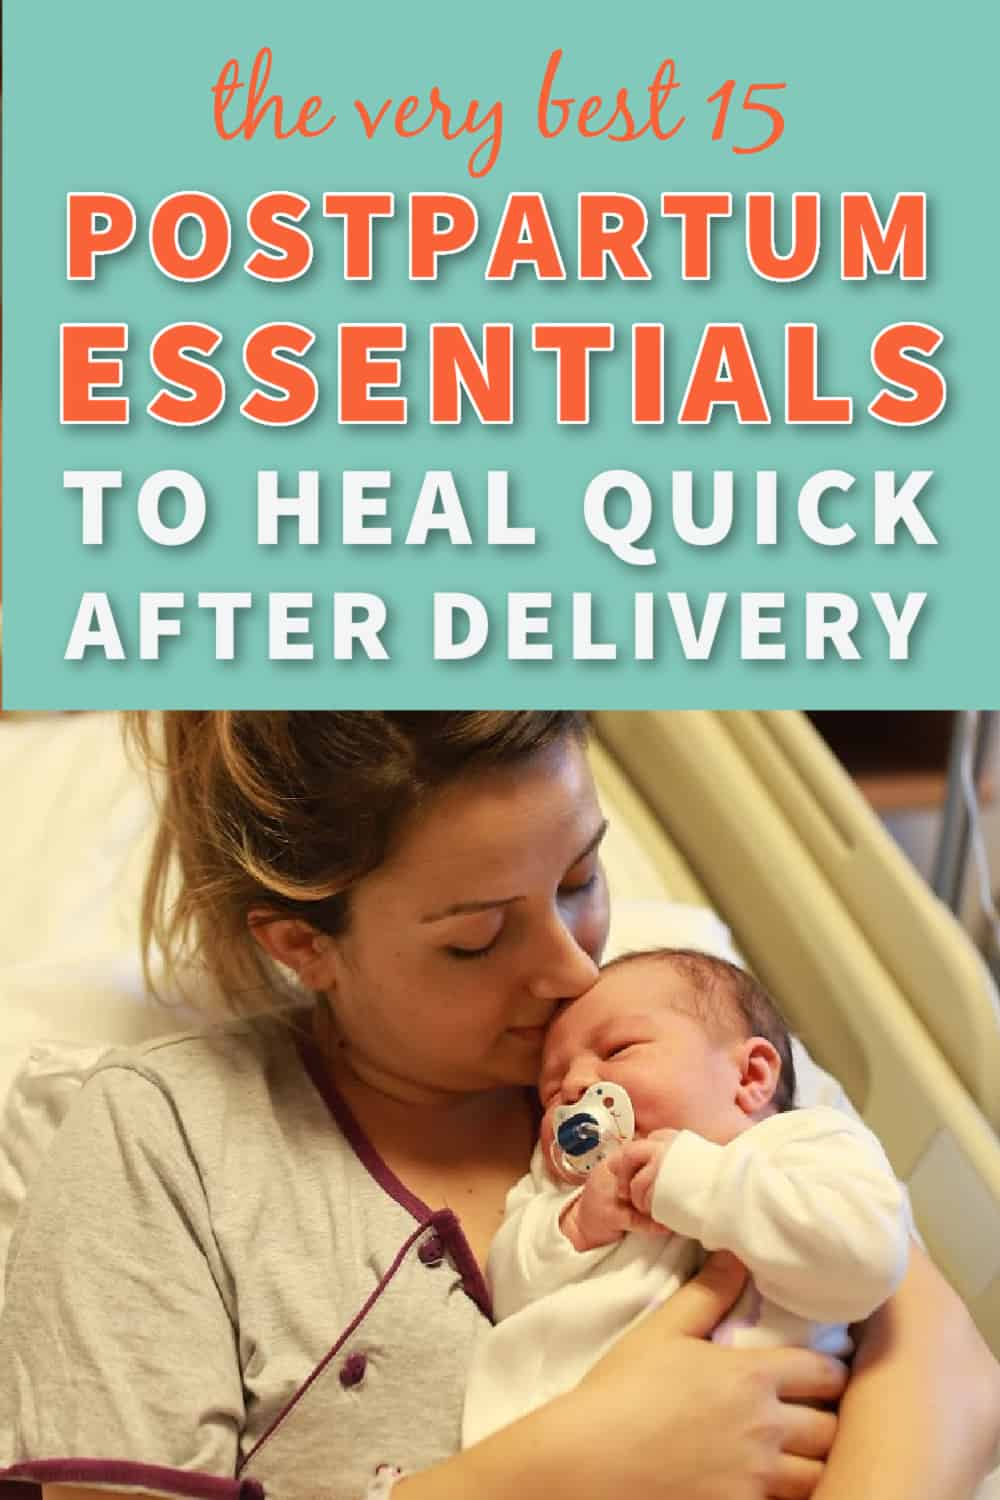 15 postpartum essentials you just gotta have for a speedy recovery after delivery